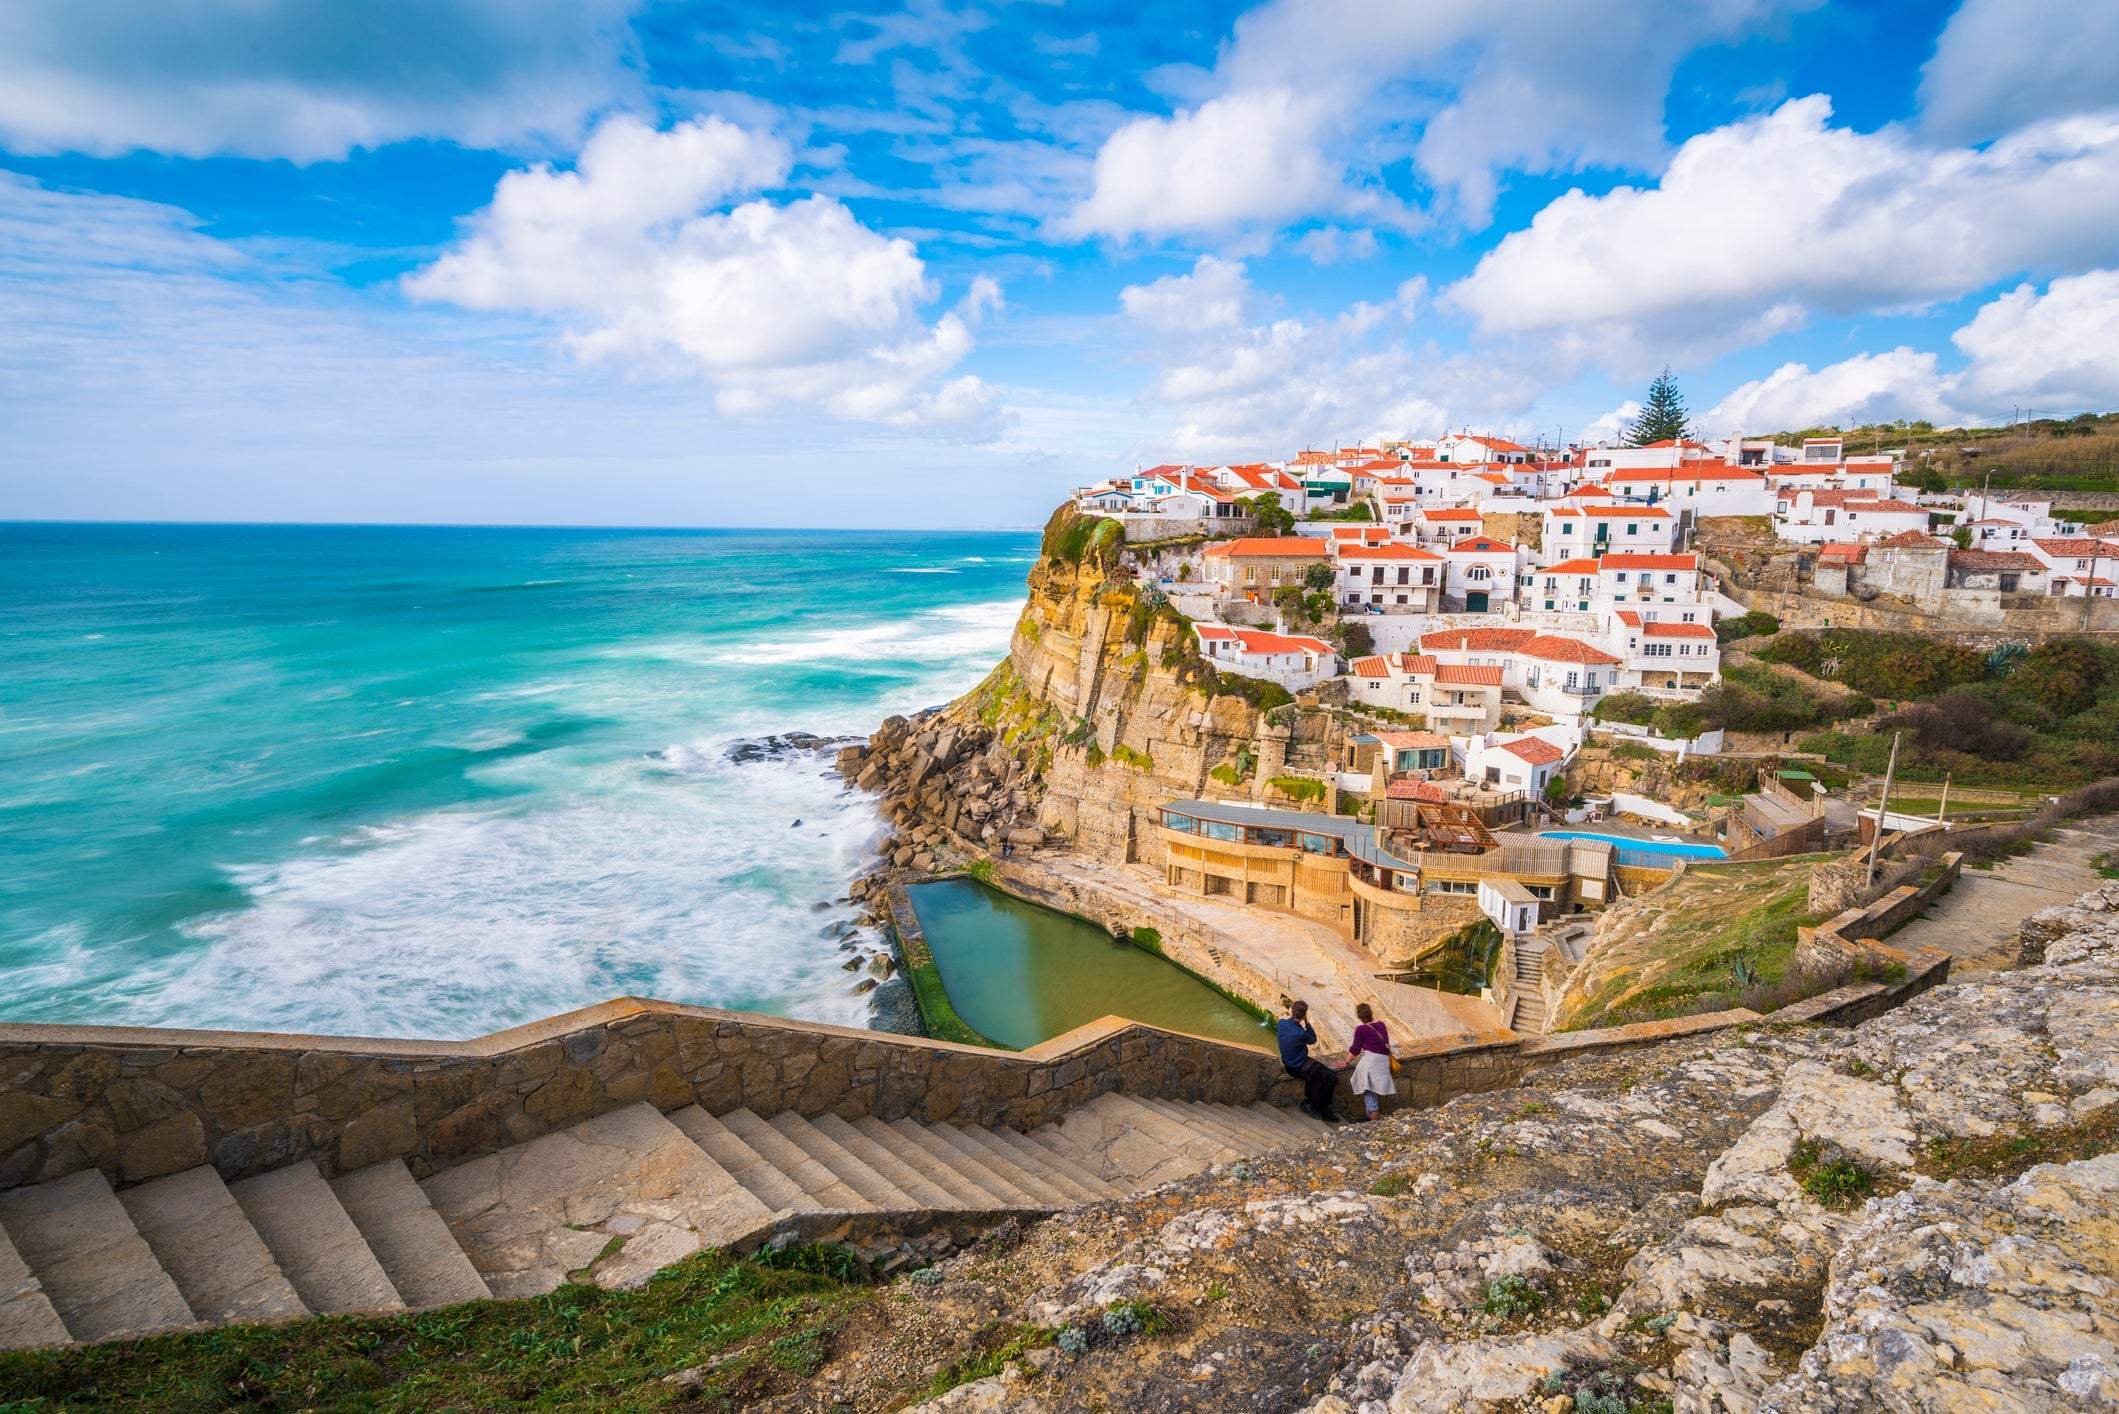 7 reasons why your first post-pandemic vacation should be in Portugal